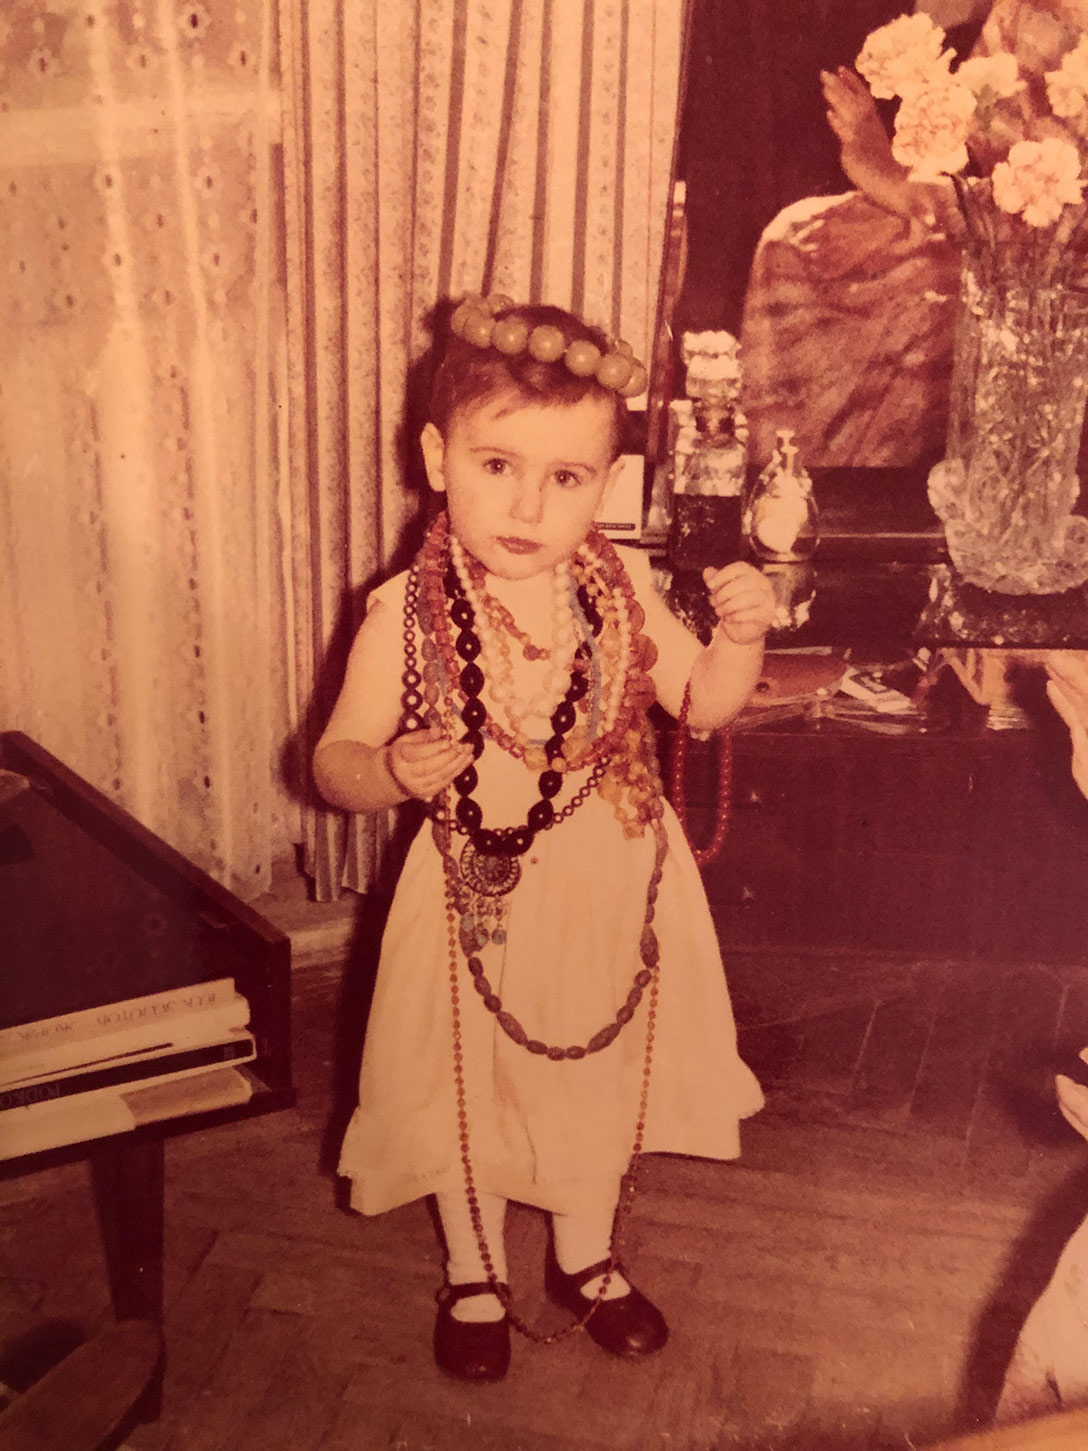 Katerina Perez at 2 years old wearing grandmother's jewellery